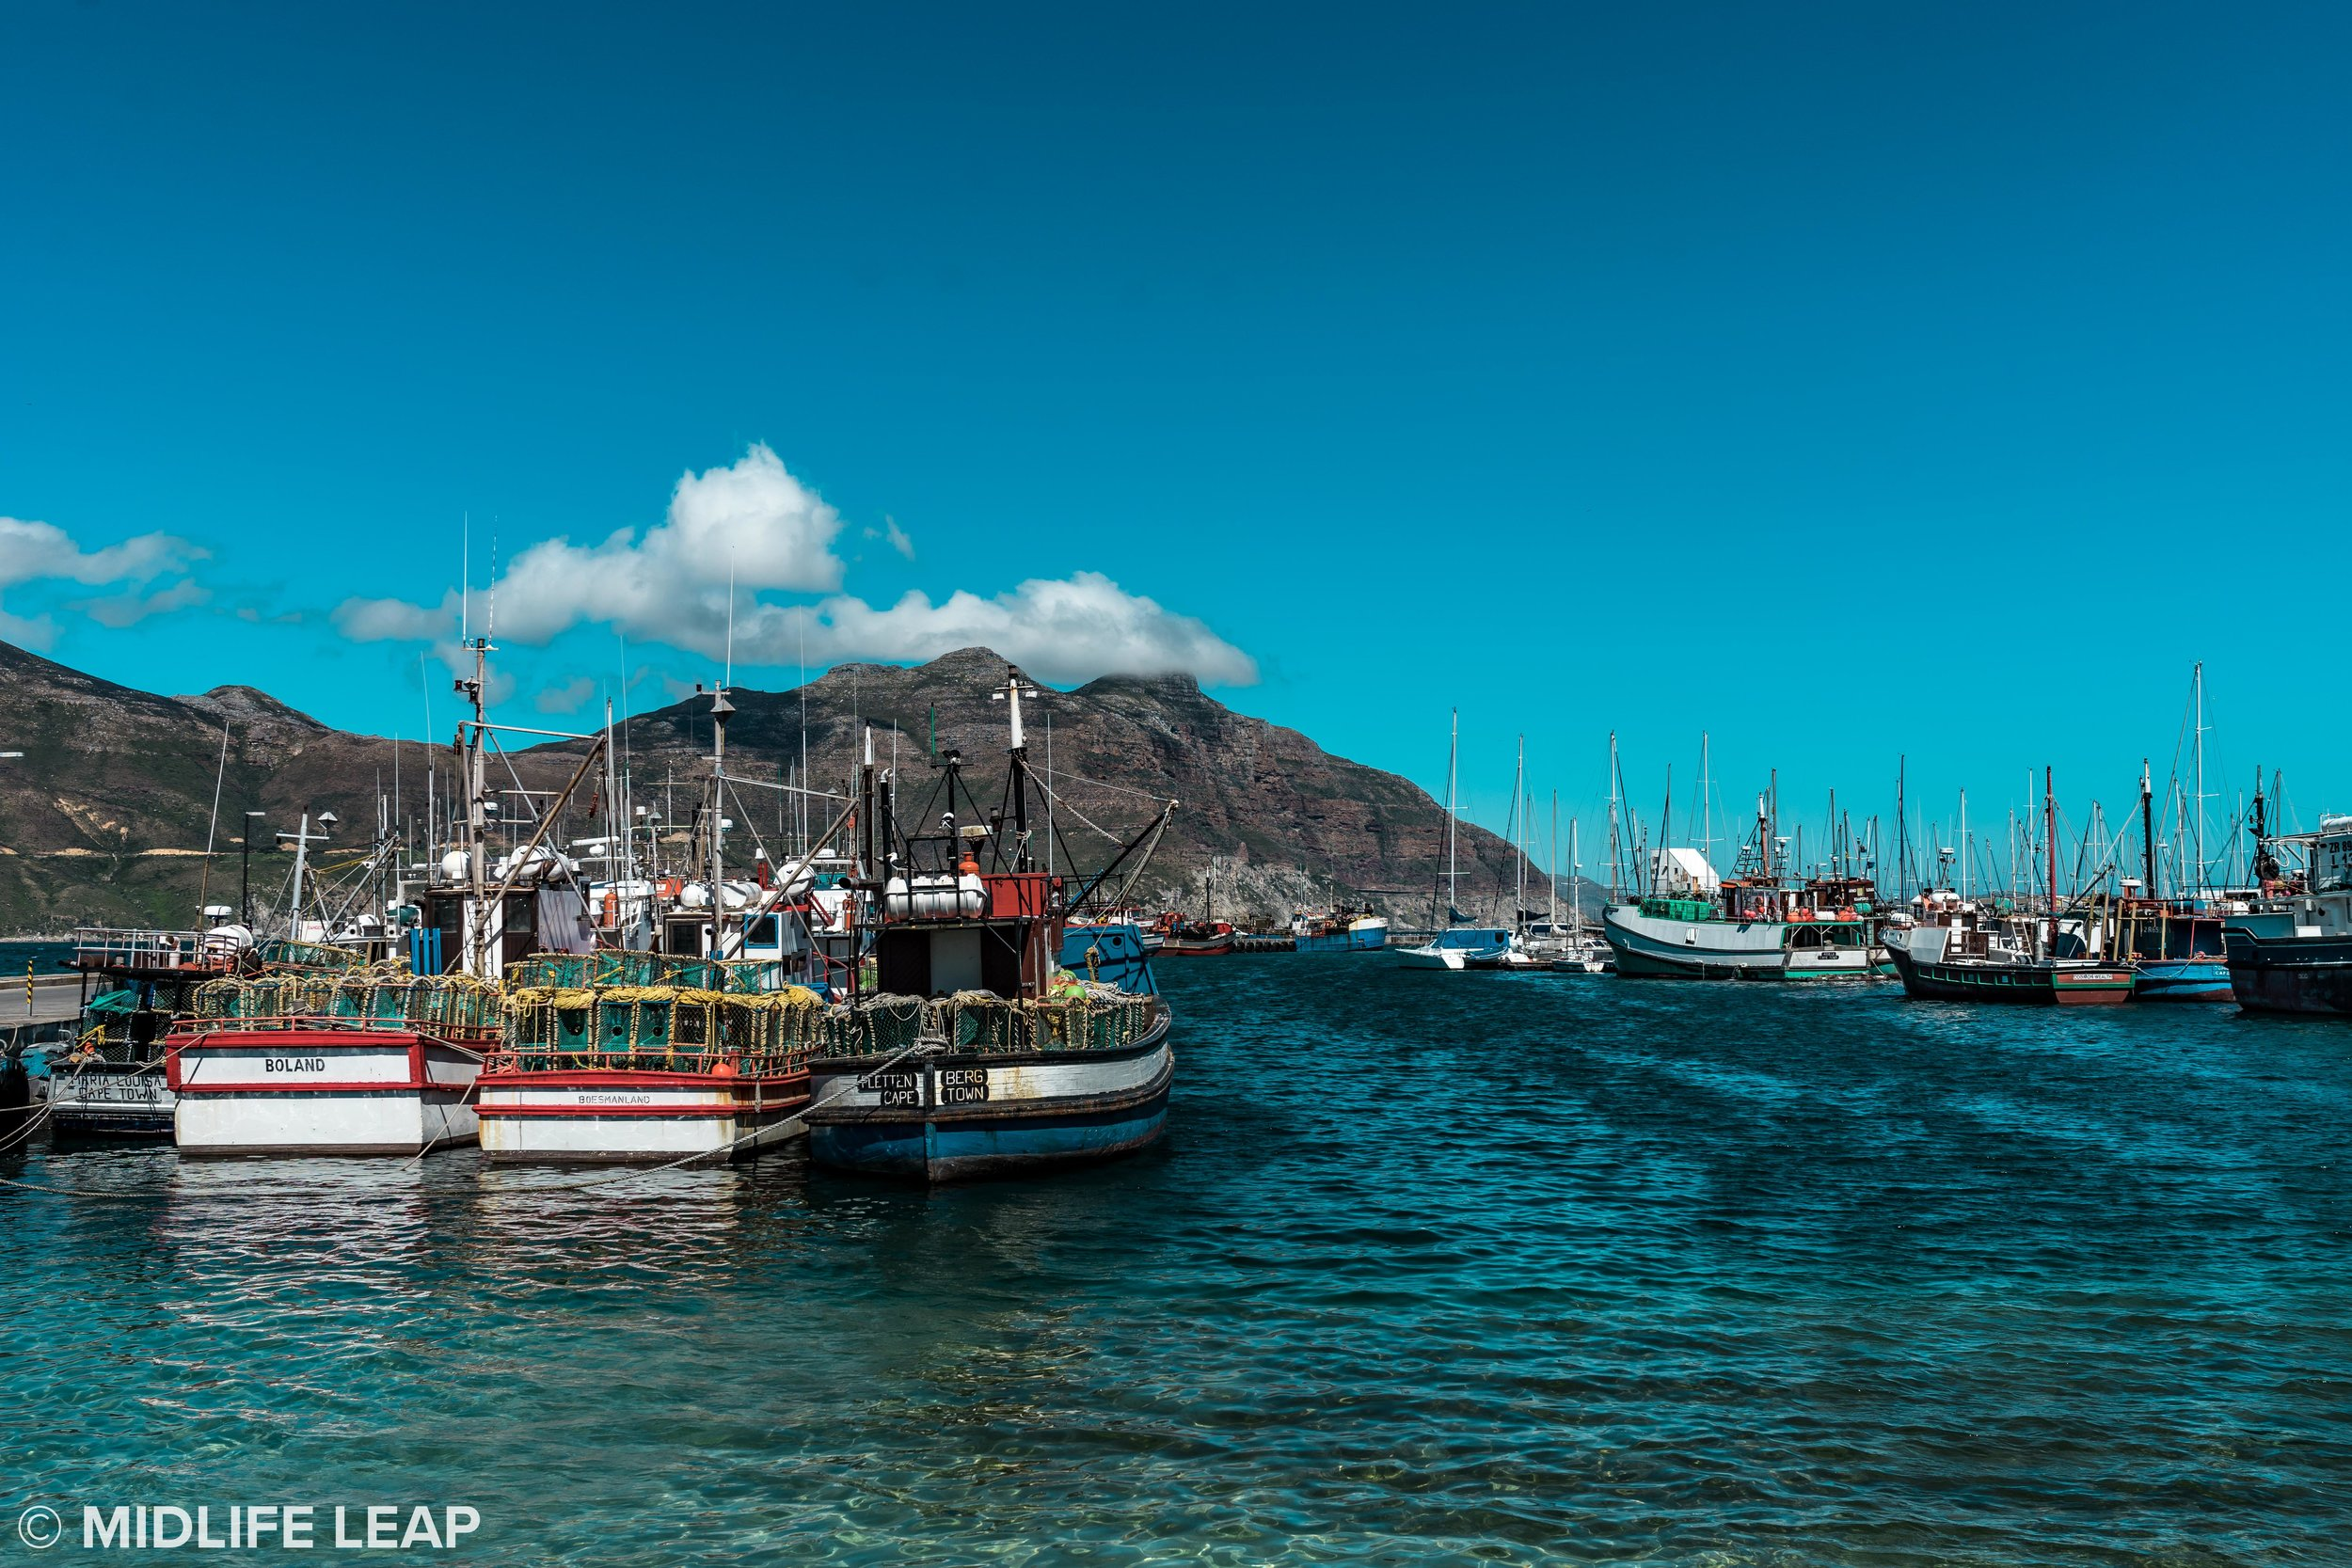 midlife-leap-cape-town-mariners-wharf-hout-bay.jpg